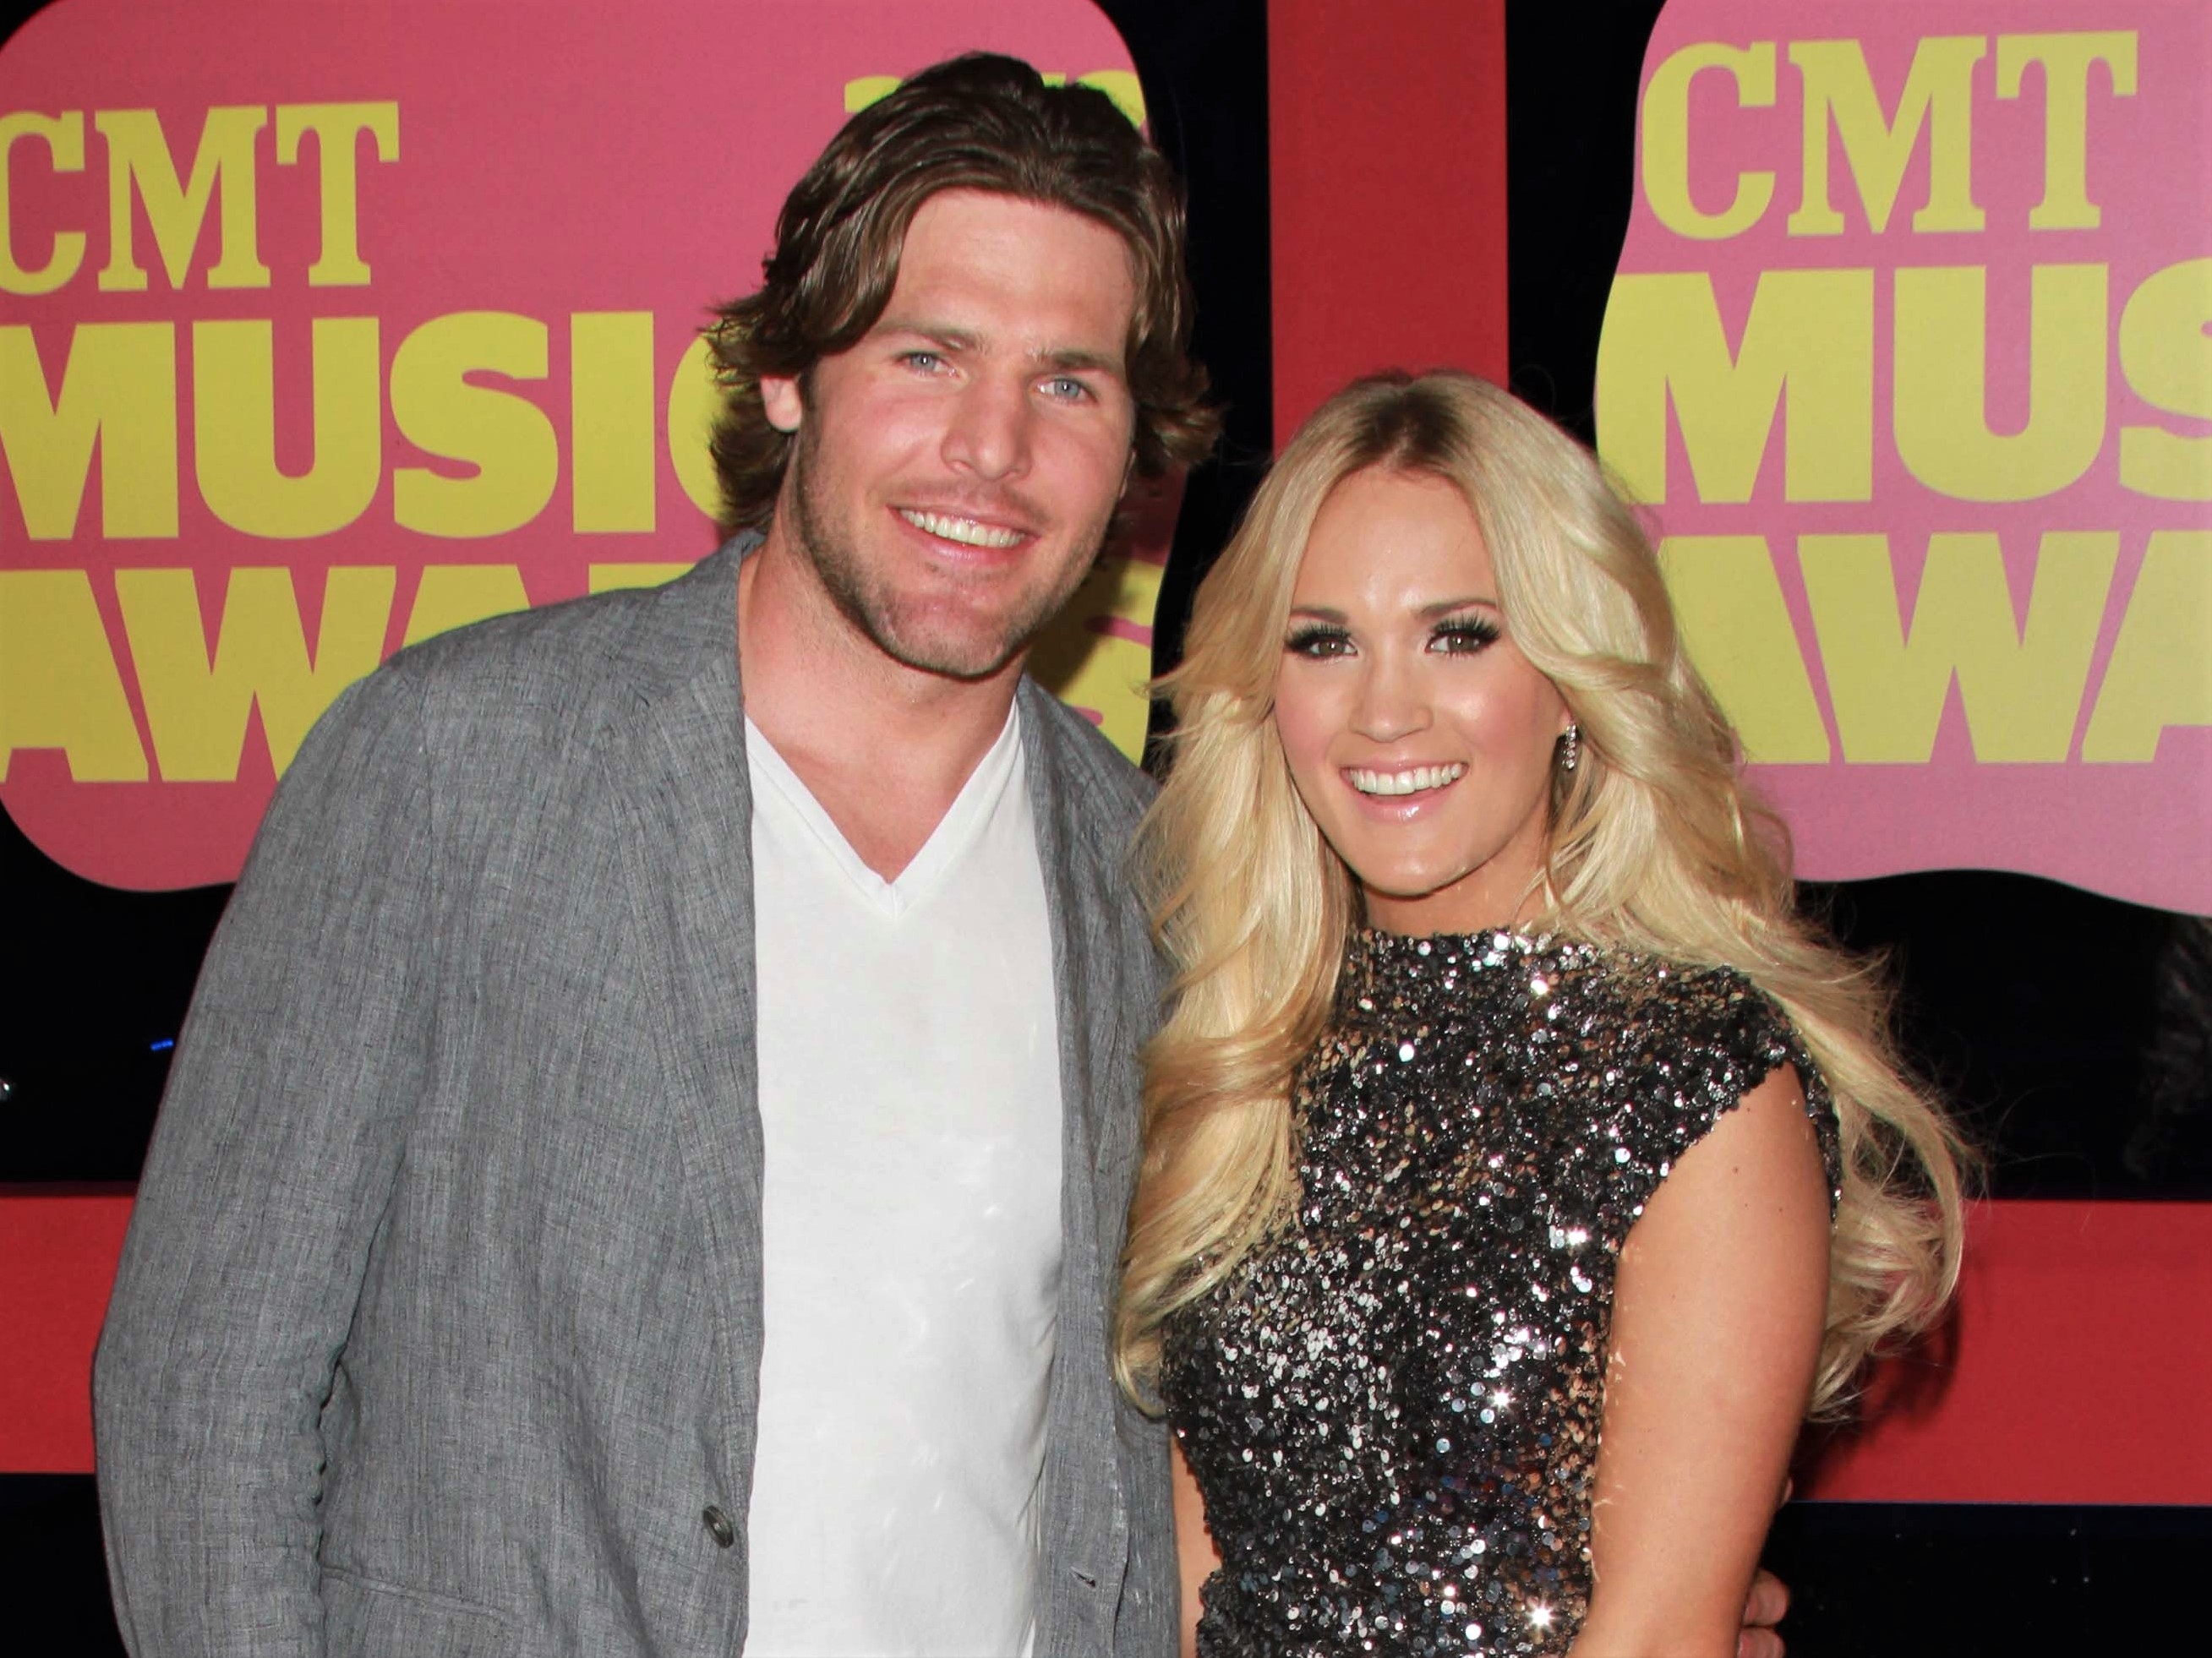 Carrie Underwood Is Pregnant! Singer and Husband Mike Fisher 'Adding Another Fish to Our Pond'